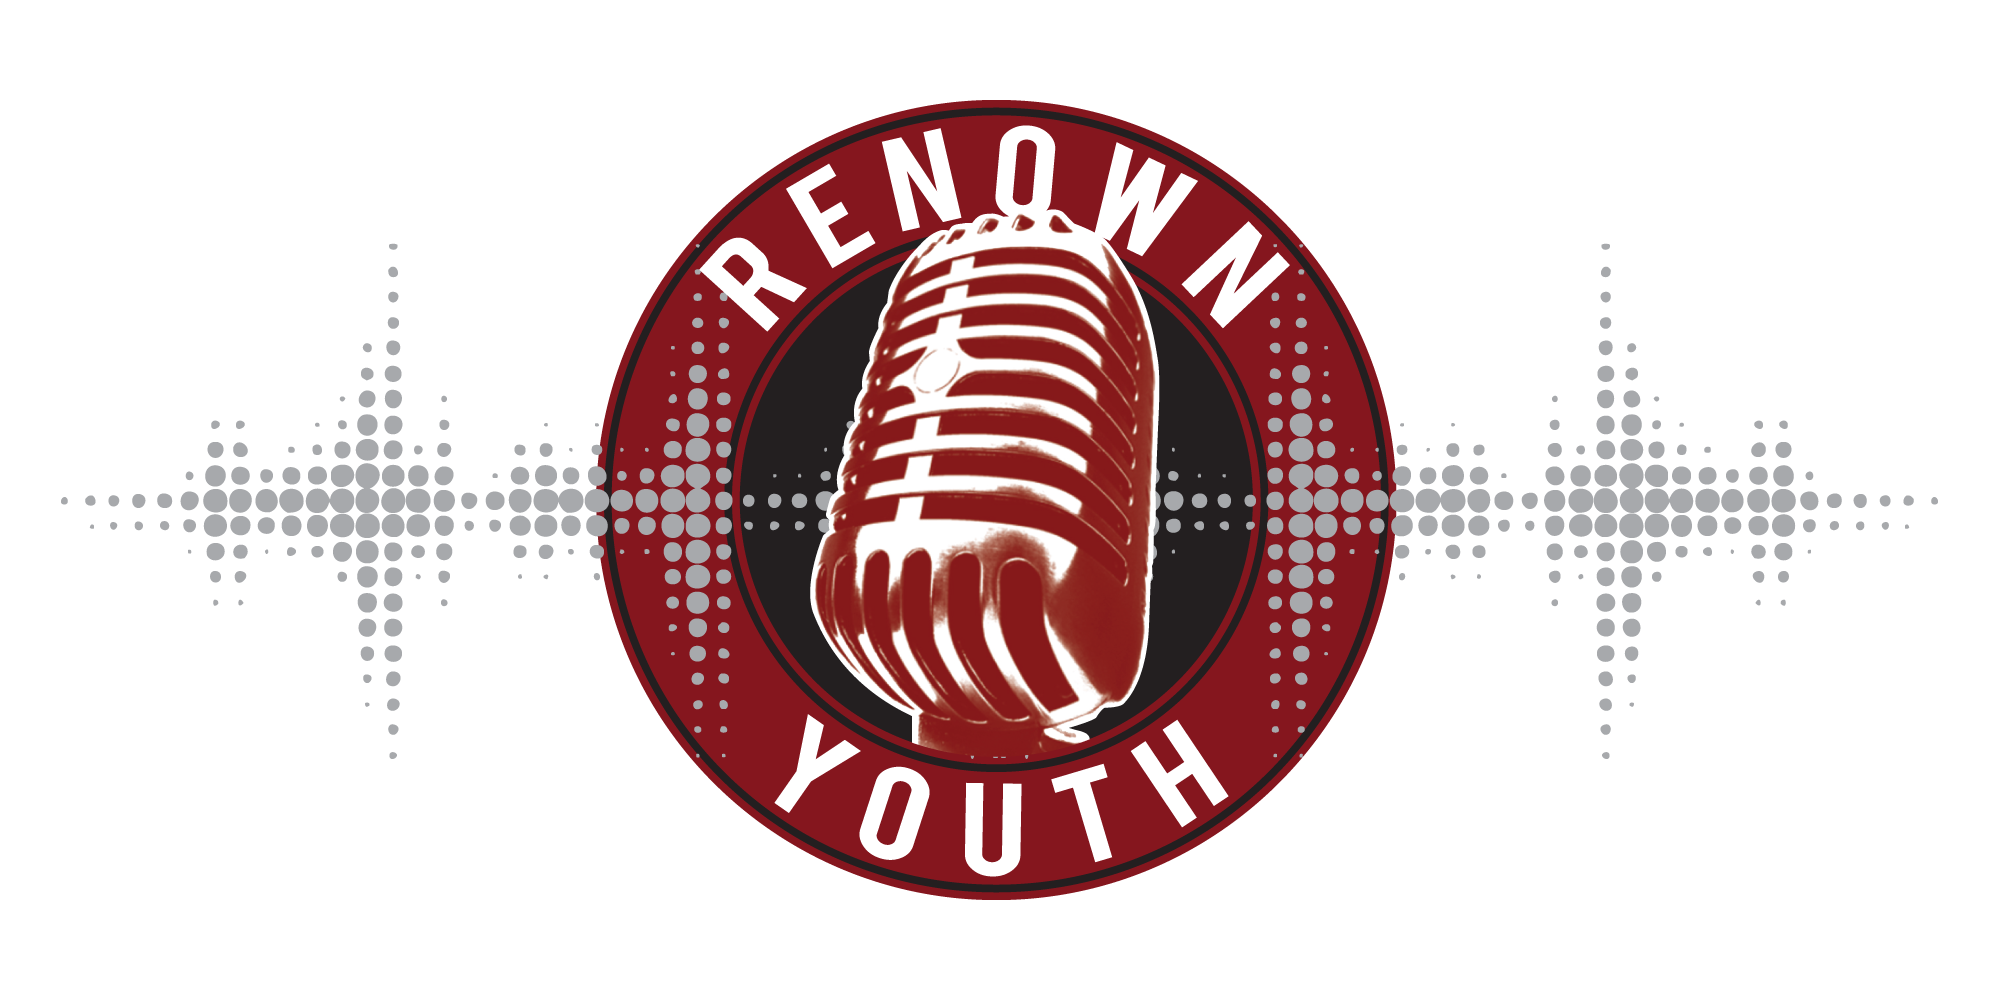 Renown Youth logo 18 Vector